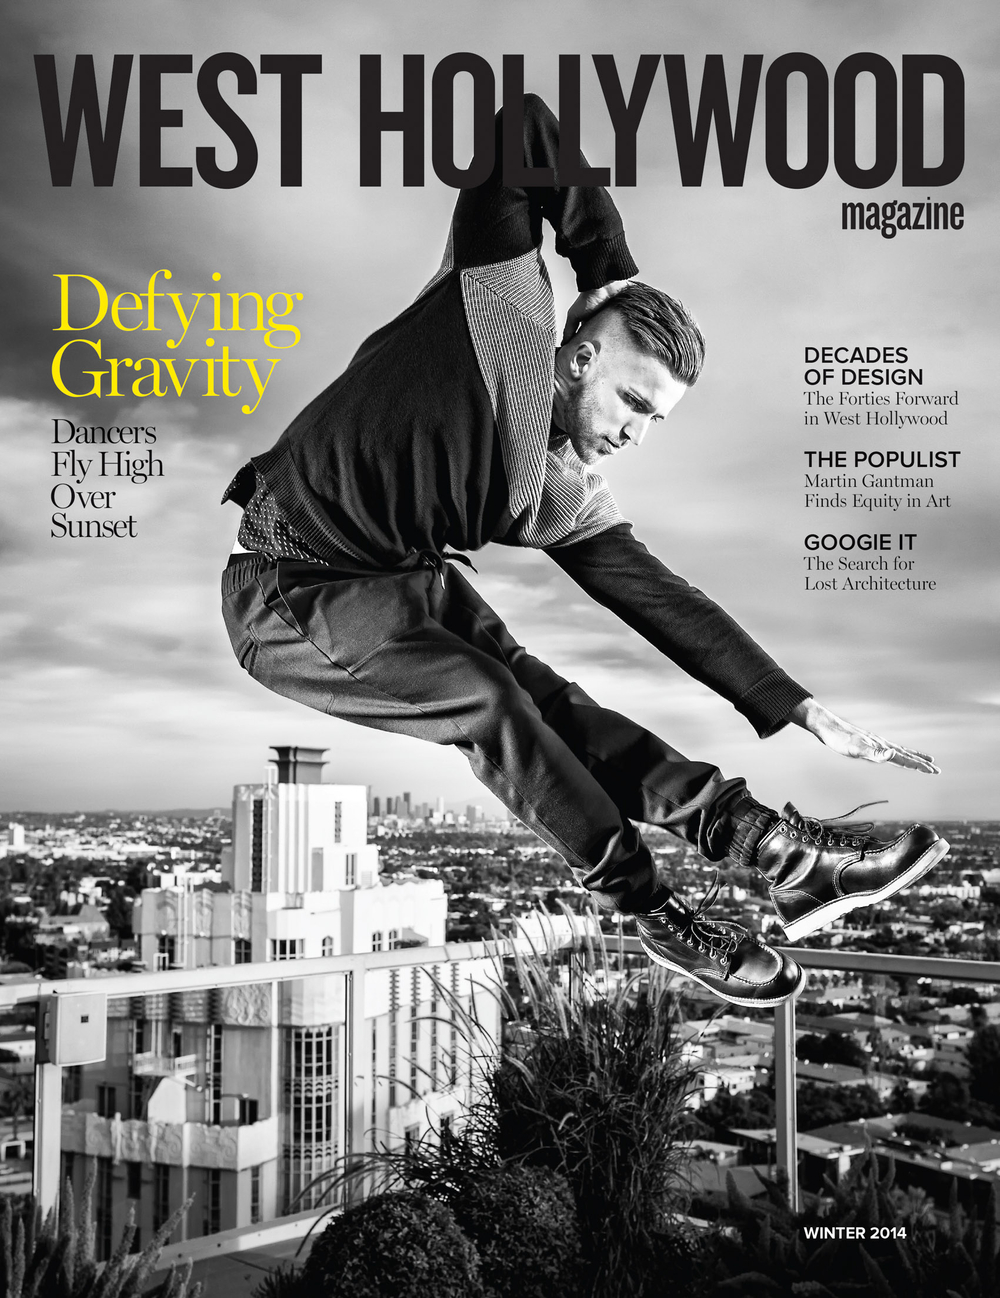 Professional dancer Taylor James photographed for West Hollywood Magazine